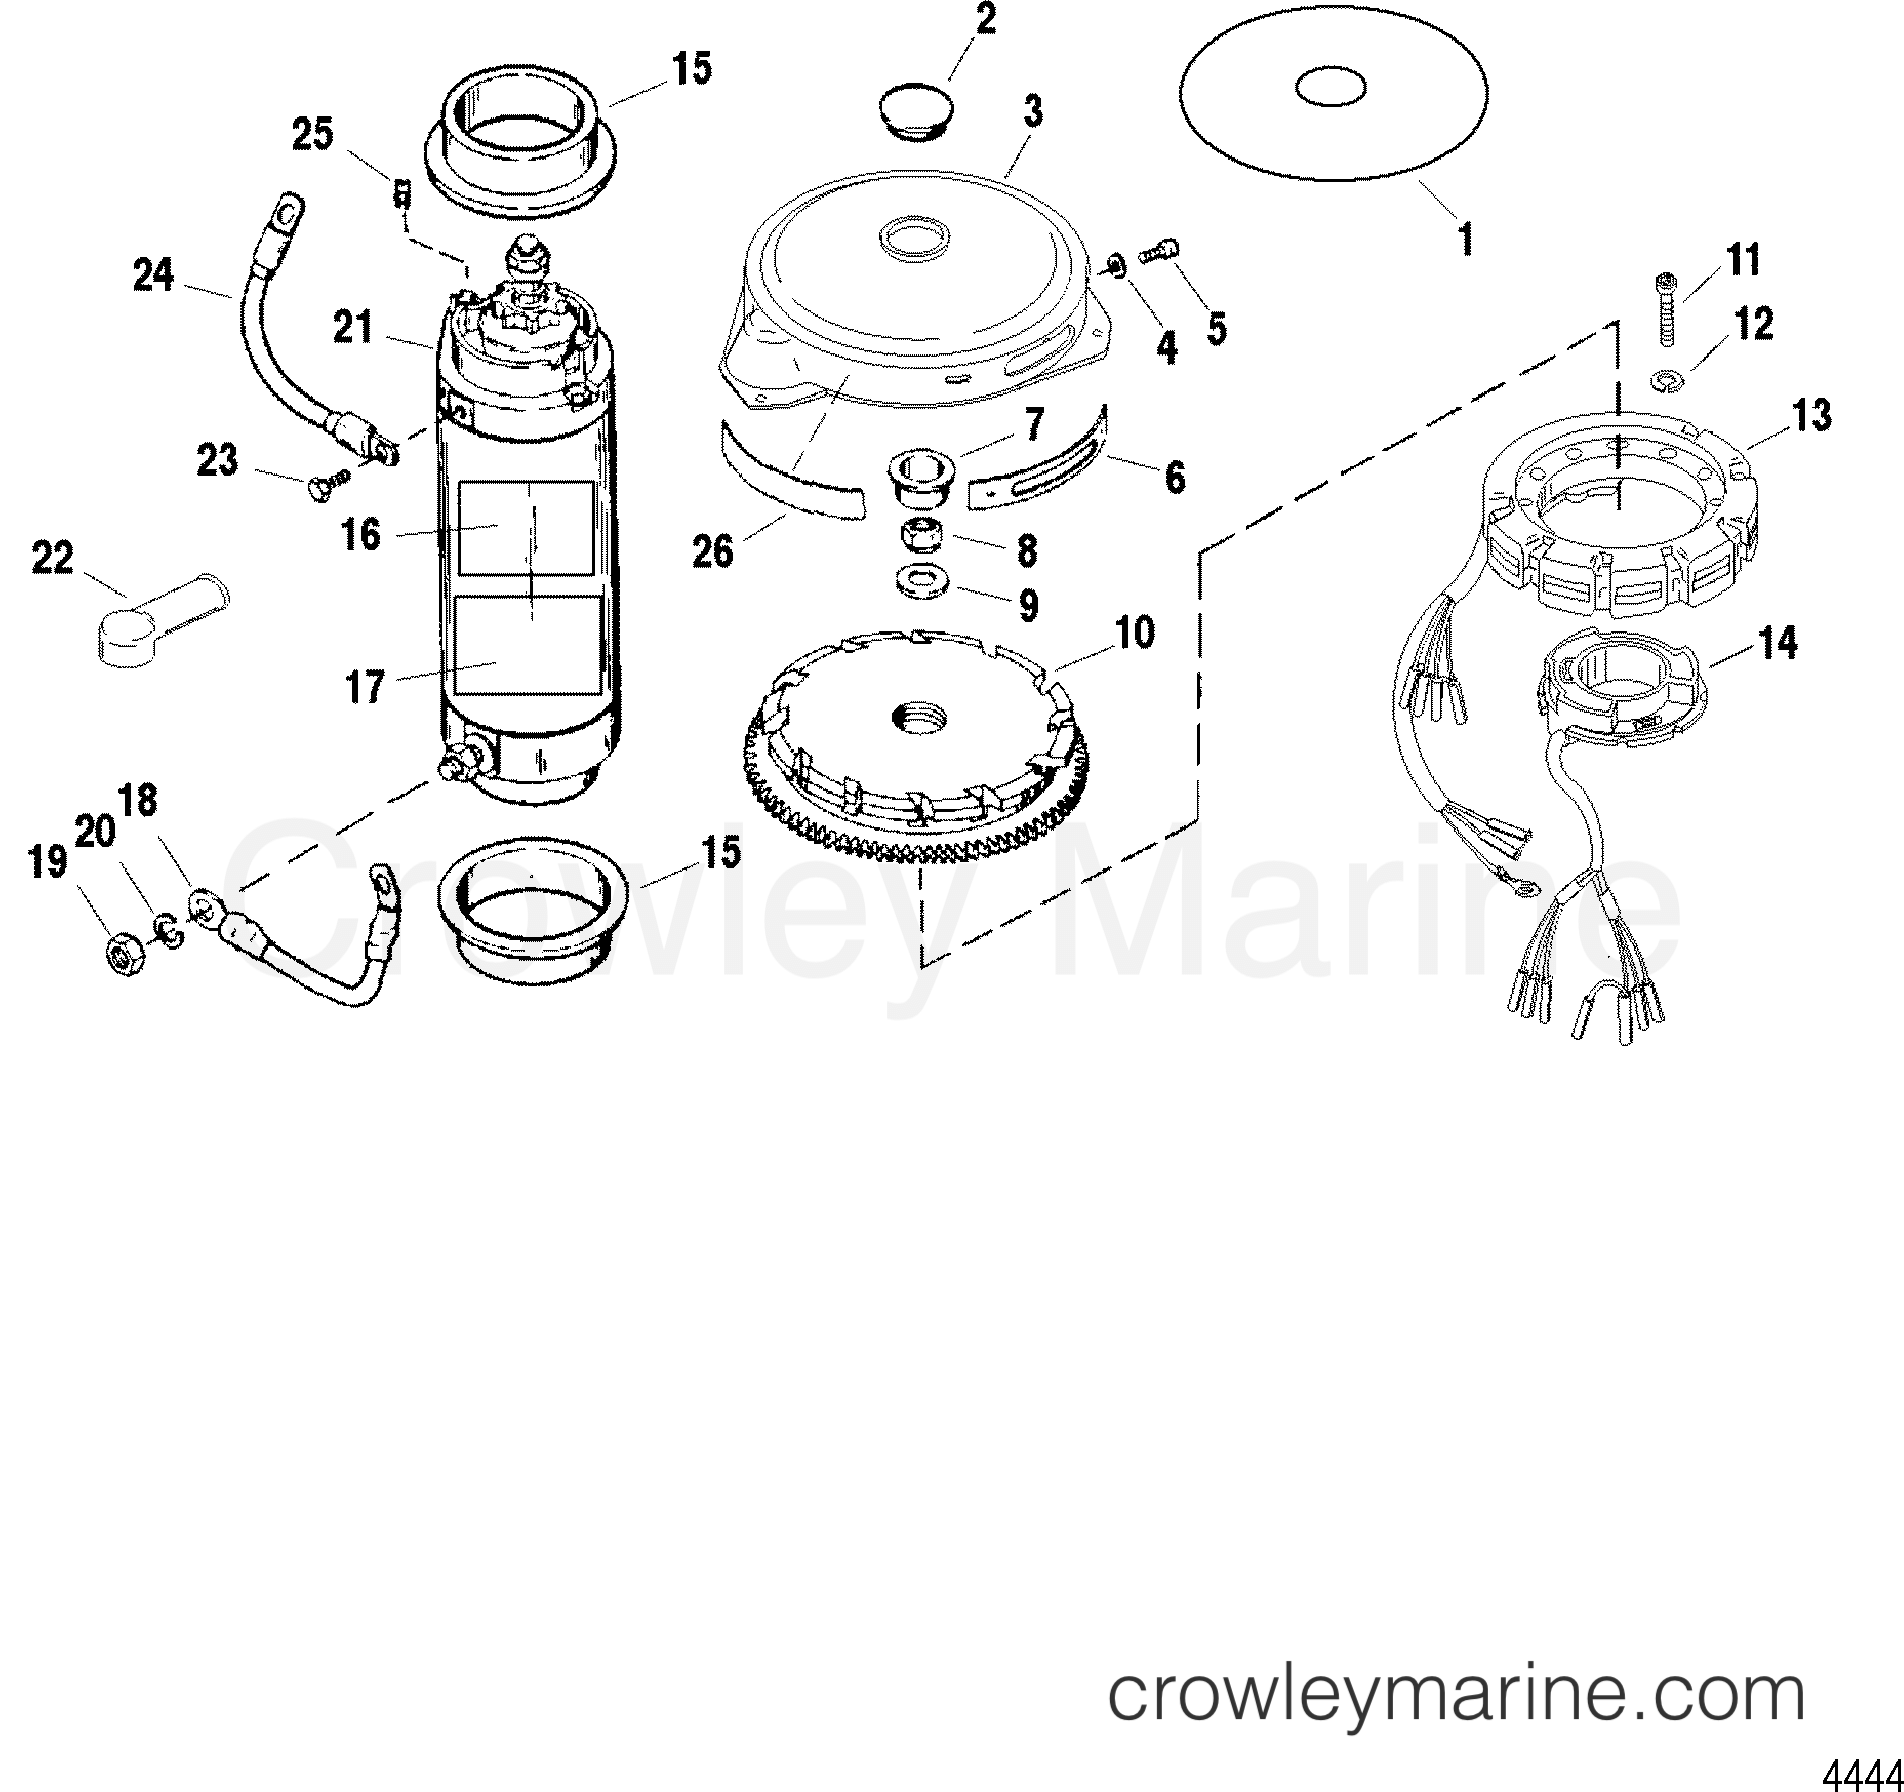 Electrical Components Flywheel Starter